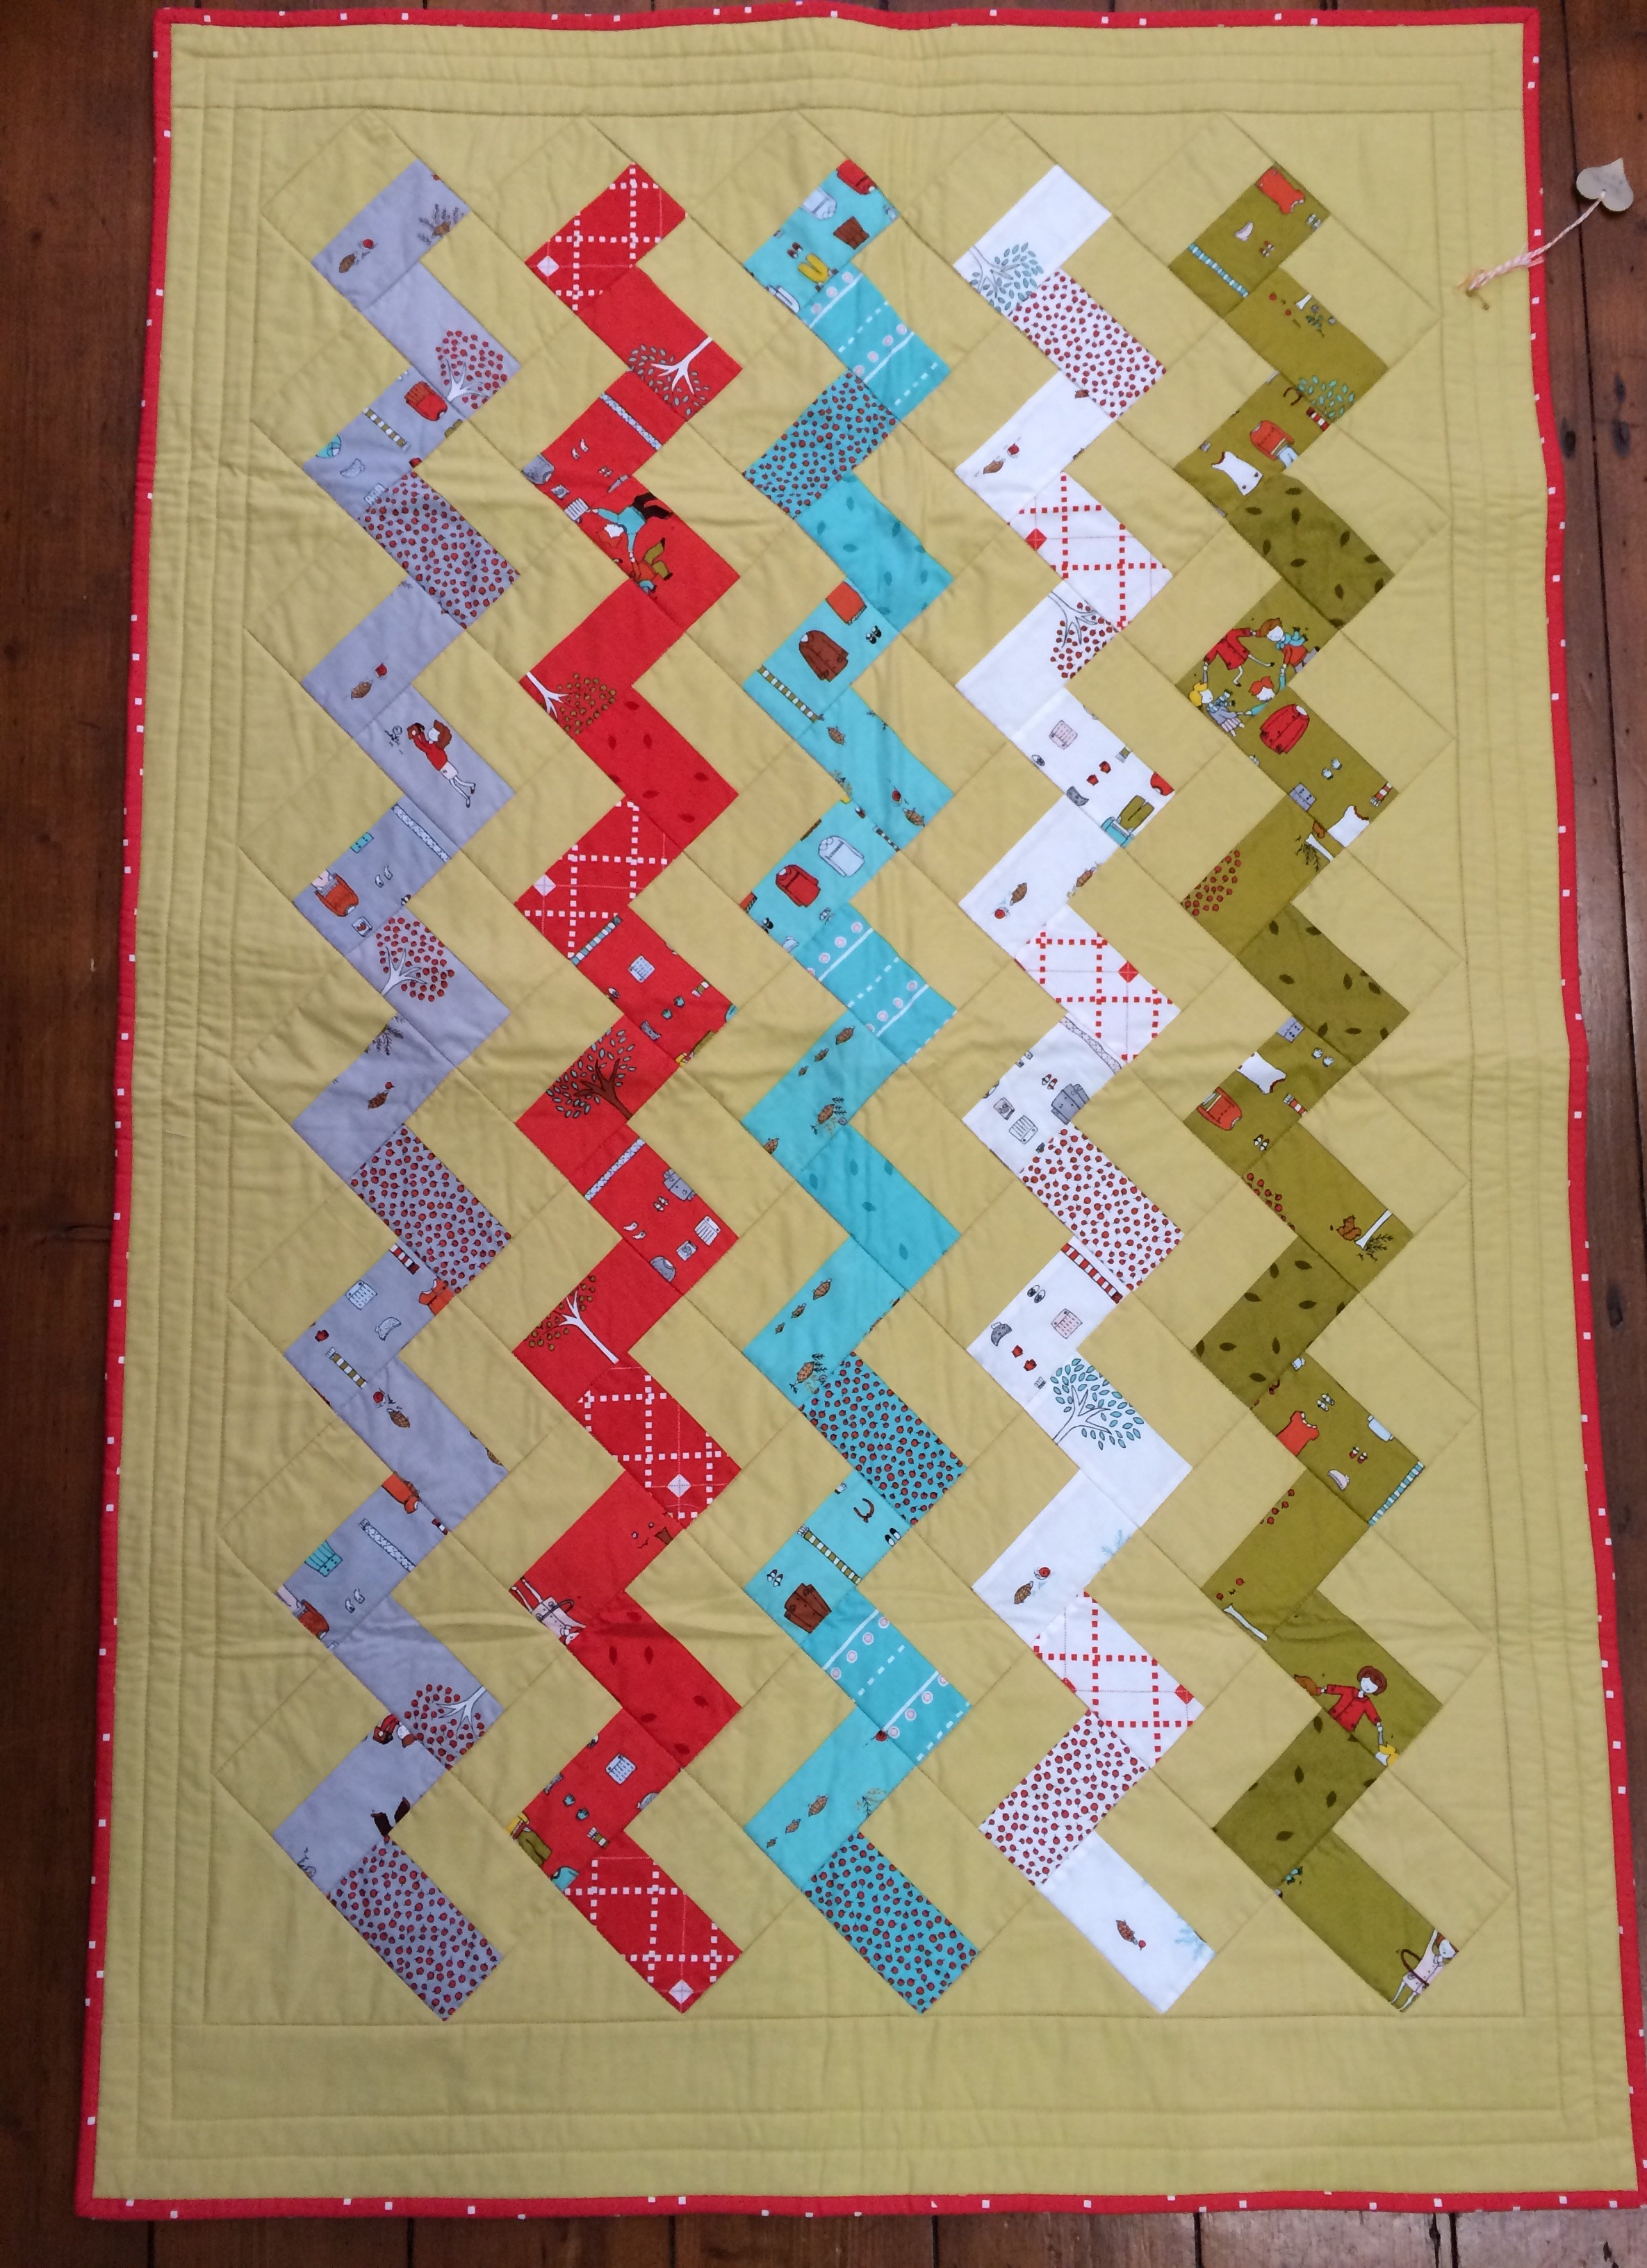 'Little Apples', by Aneela Hoey fabric in a Hettie's Patch pattern, 'A Chevron Baby Quilt'.